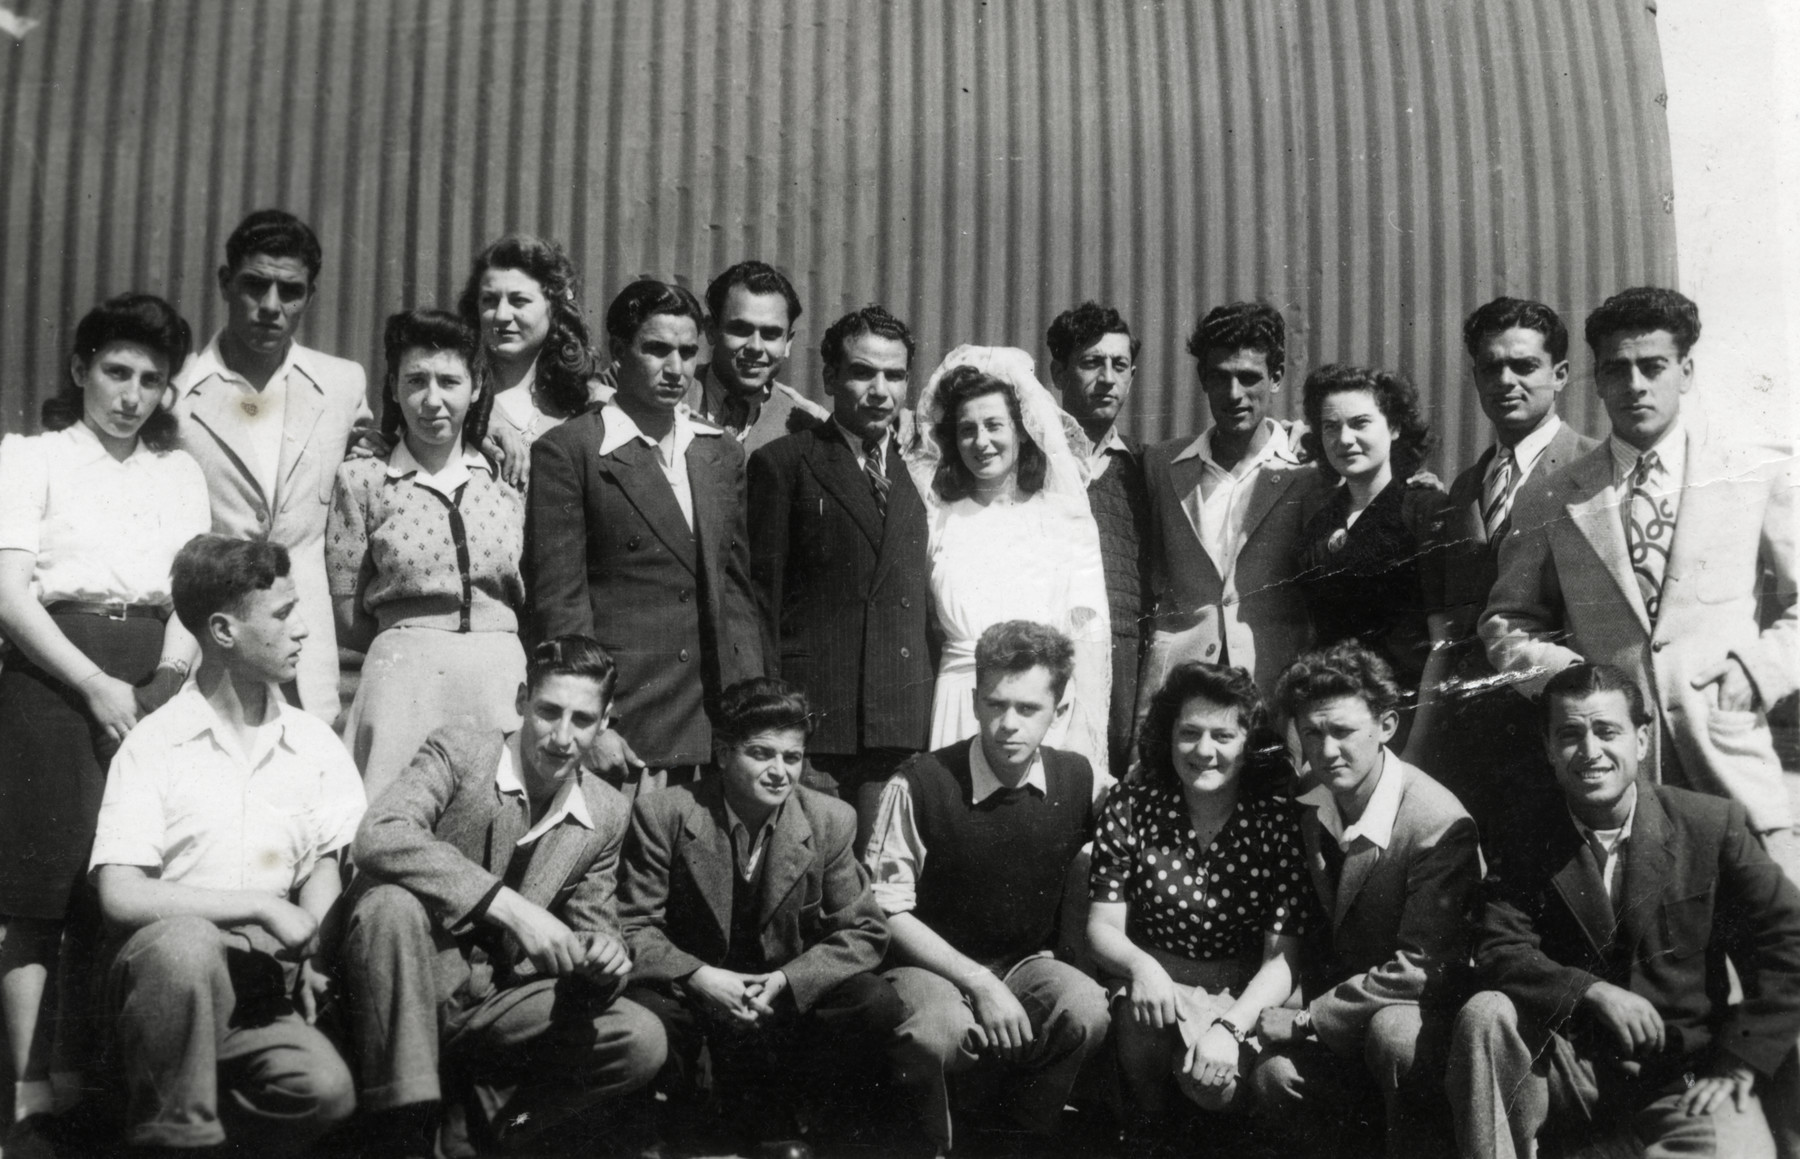 Internees in Cyprus celebrate the wedding of a Polish born bride and a Tunisian born groom.